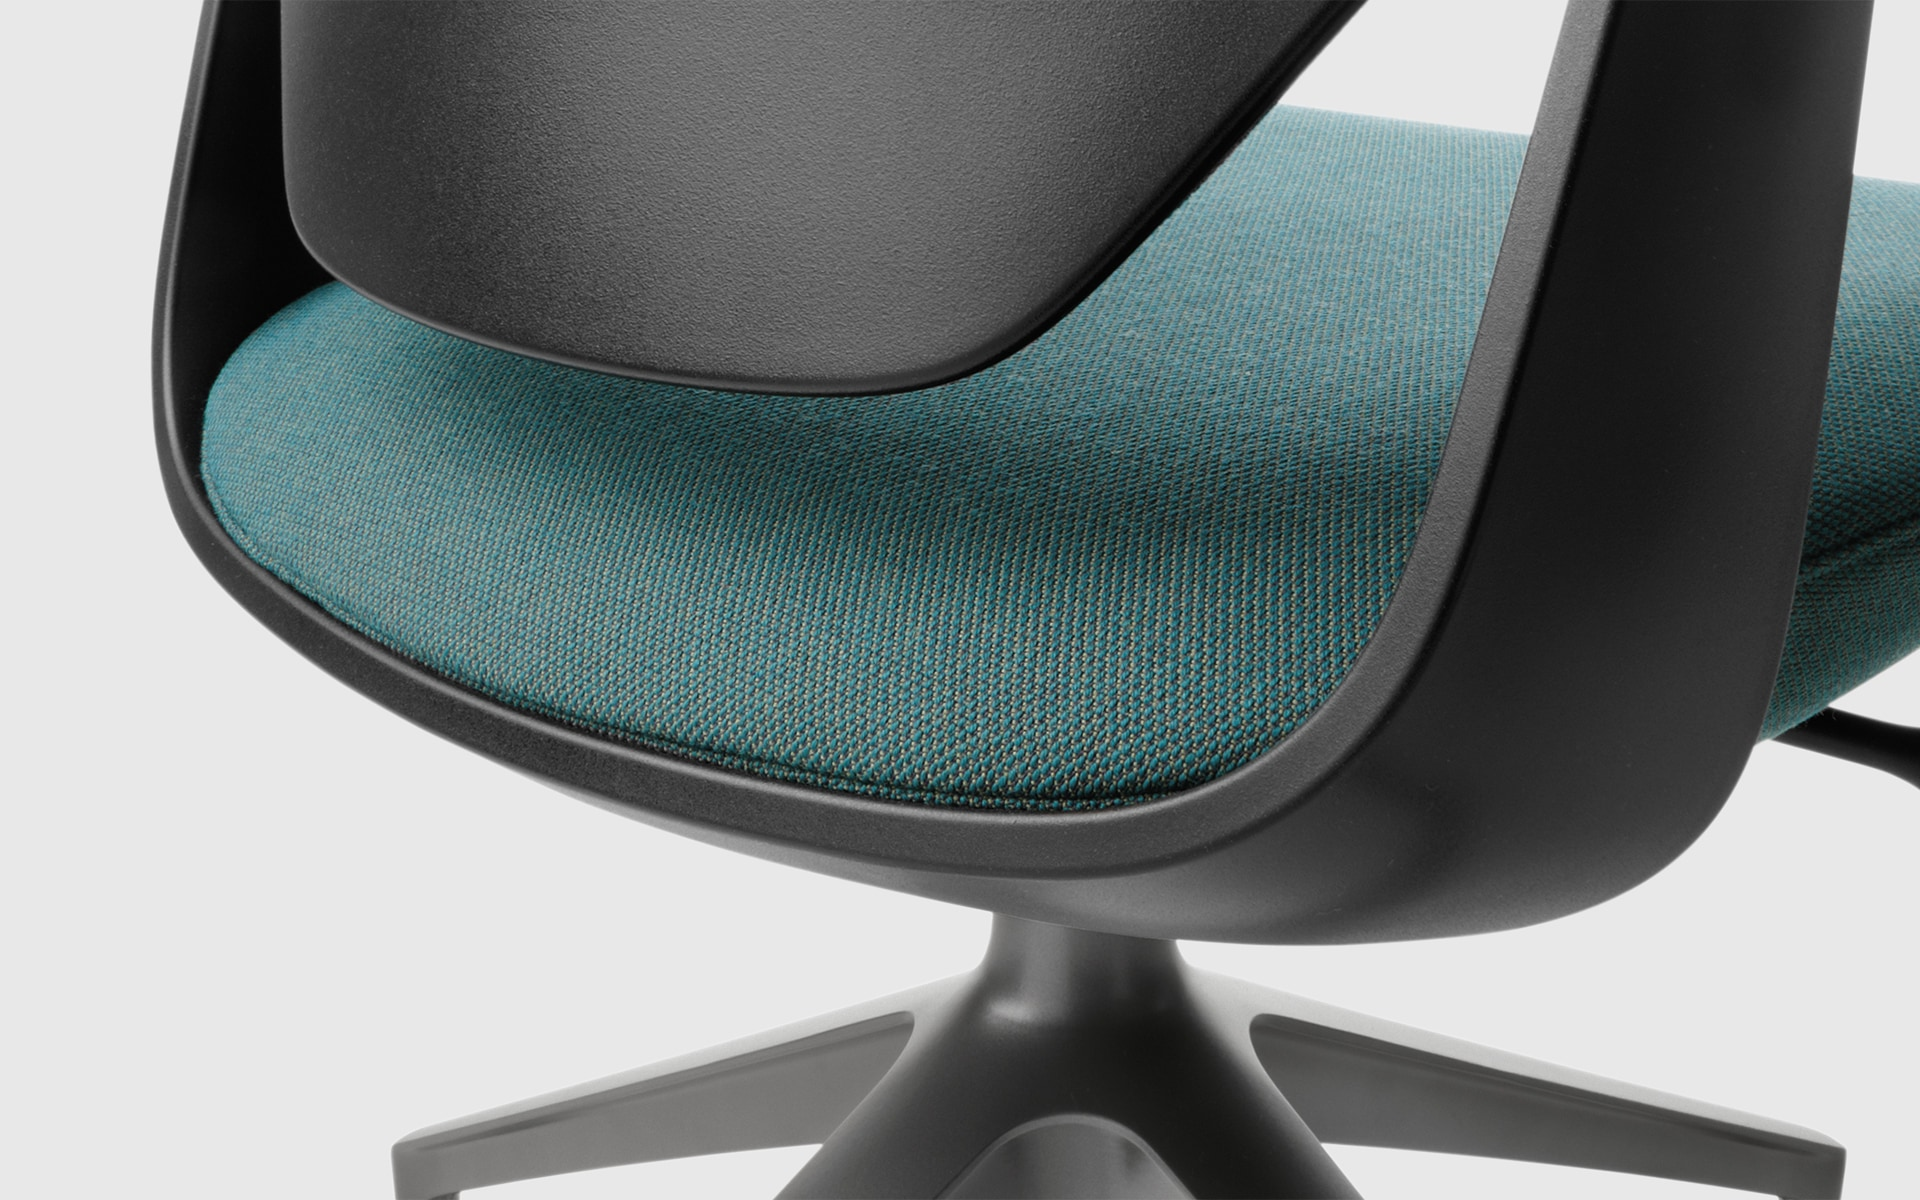 Close-up of a Profim Trillo Pro office chair by ITO Design in black with green upholstery